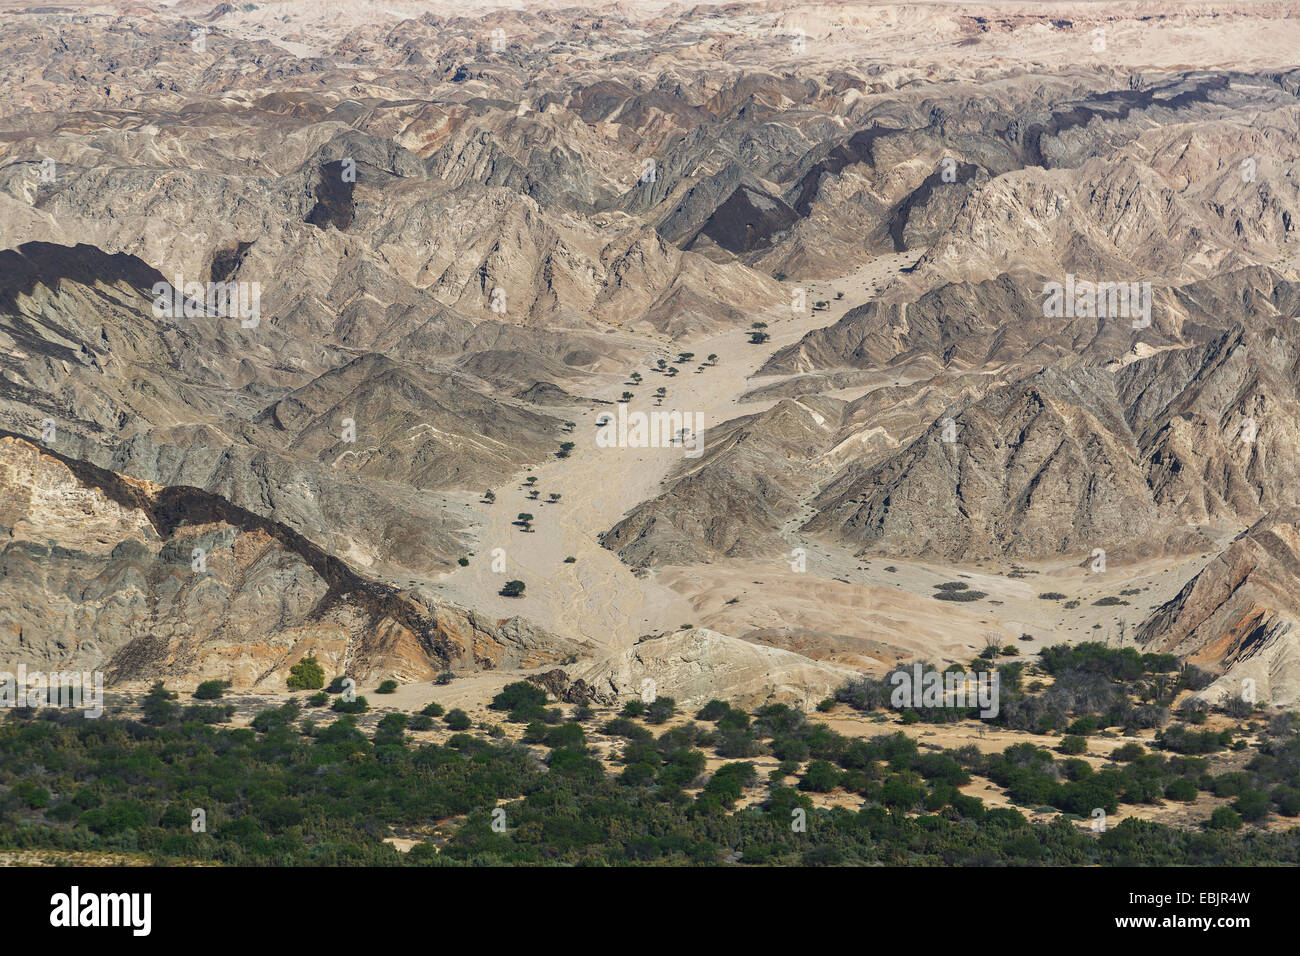 Aerial view of desert and rocks, Moon Valley, Namib Desert, Namibia - Stock Image